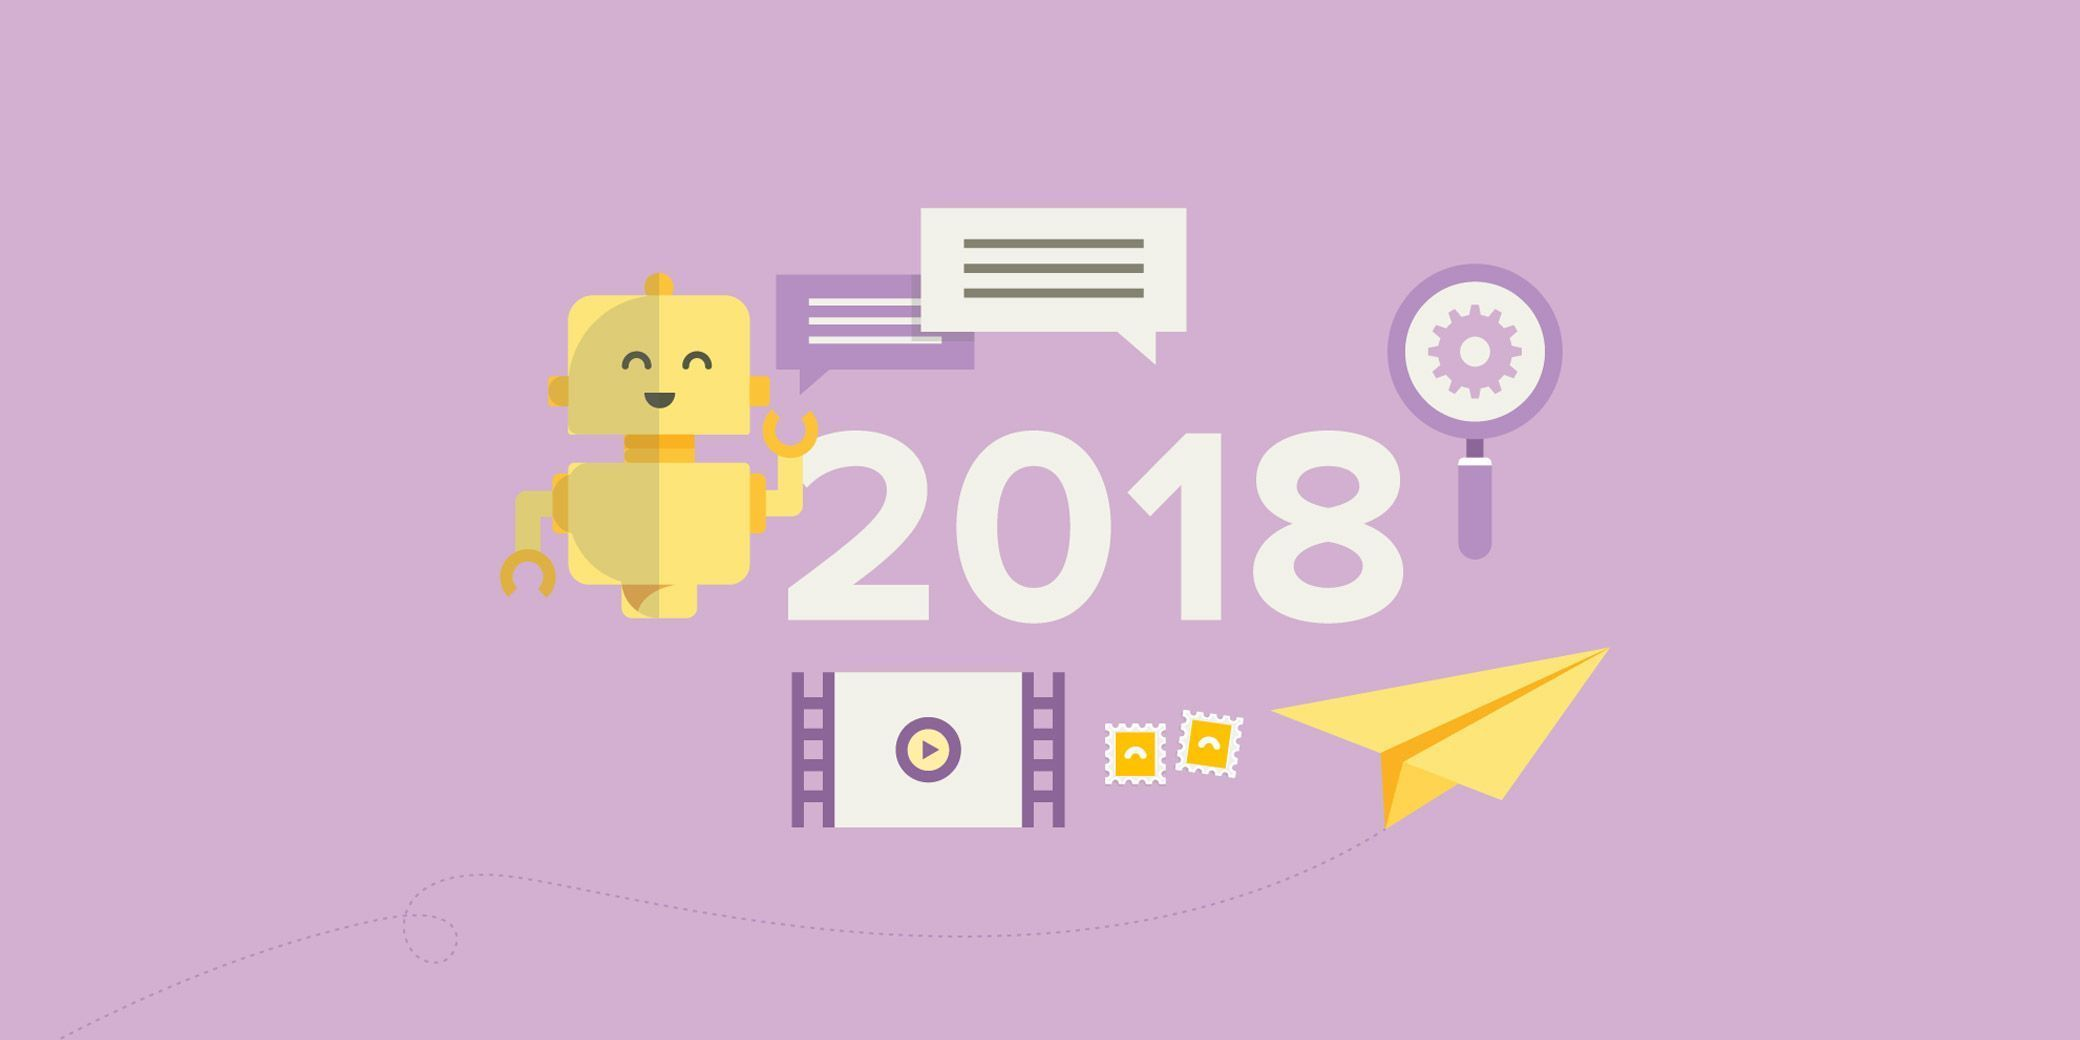 Estrategias de Marketing para Triunfar Durante el 2018